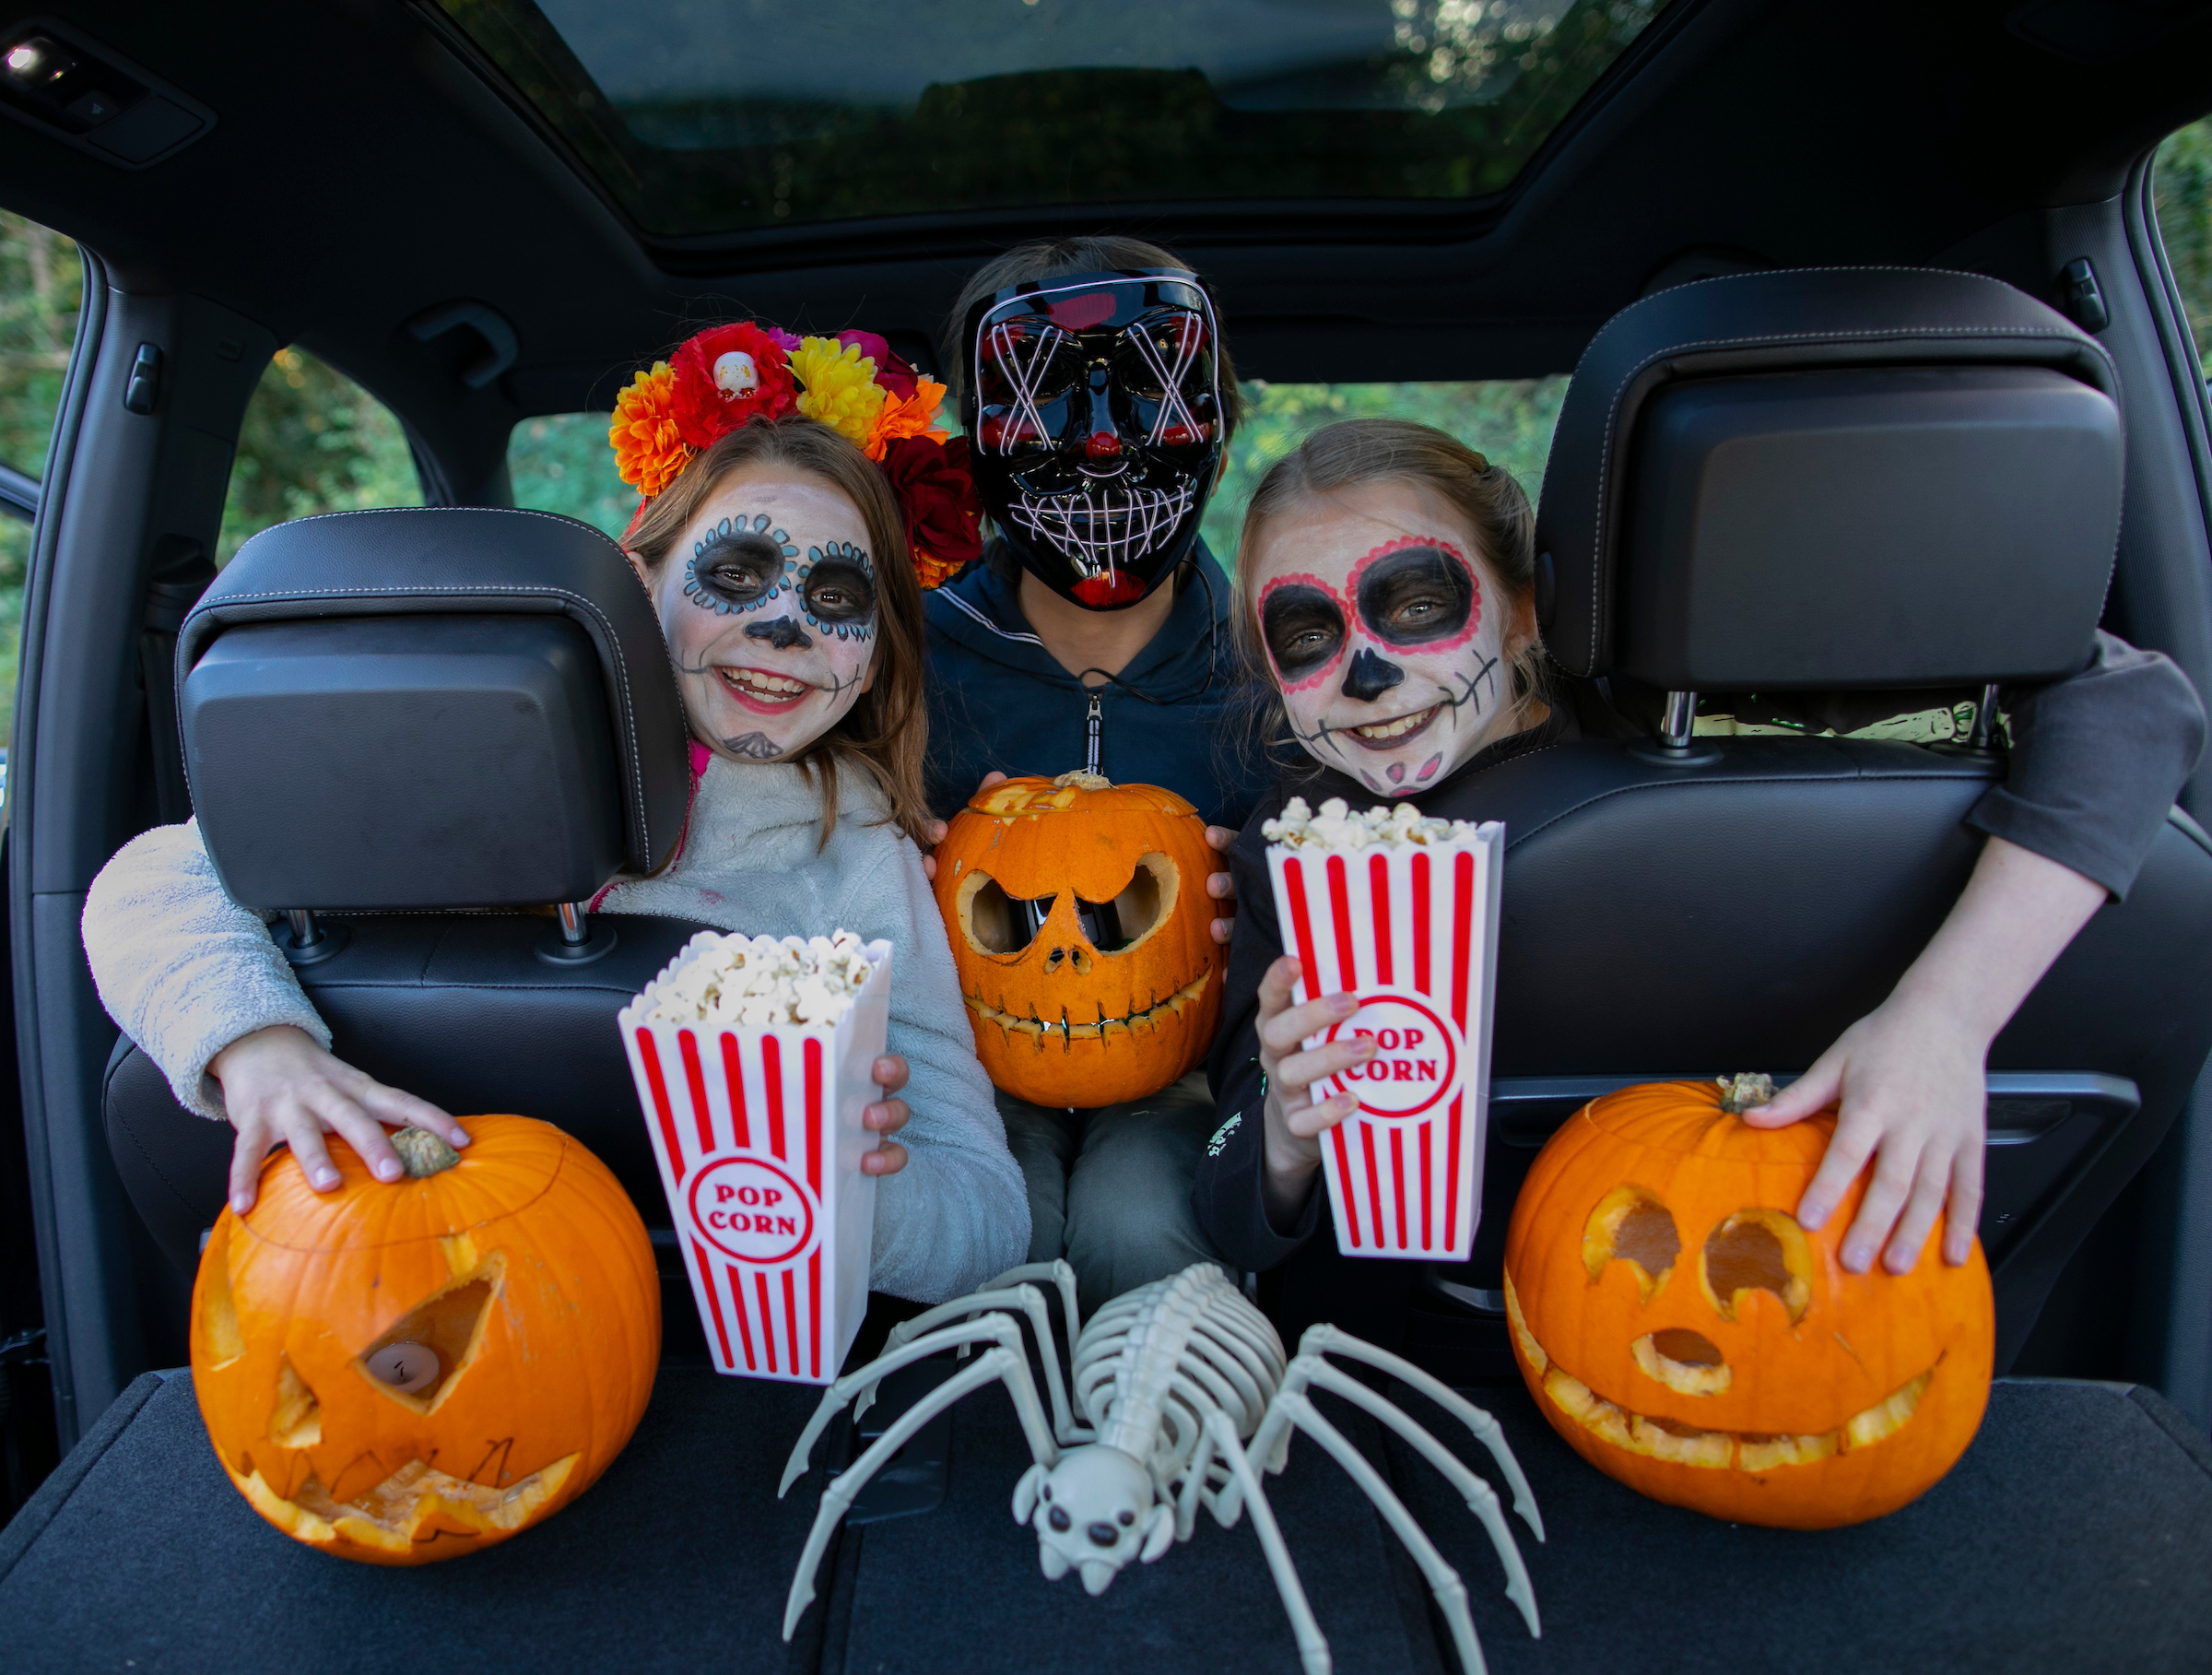 Two girls sit in the car looking through the headrests, wearing Day of the Dead make-up. A masked parent sits between them spookily! They are surrounded by three pumpkins, the middle one is glowing and they hold a box of popcorn each. A large spider poses next to the pumpkins.